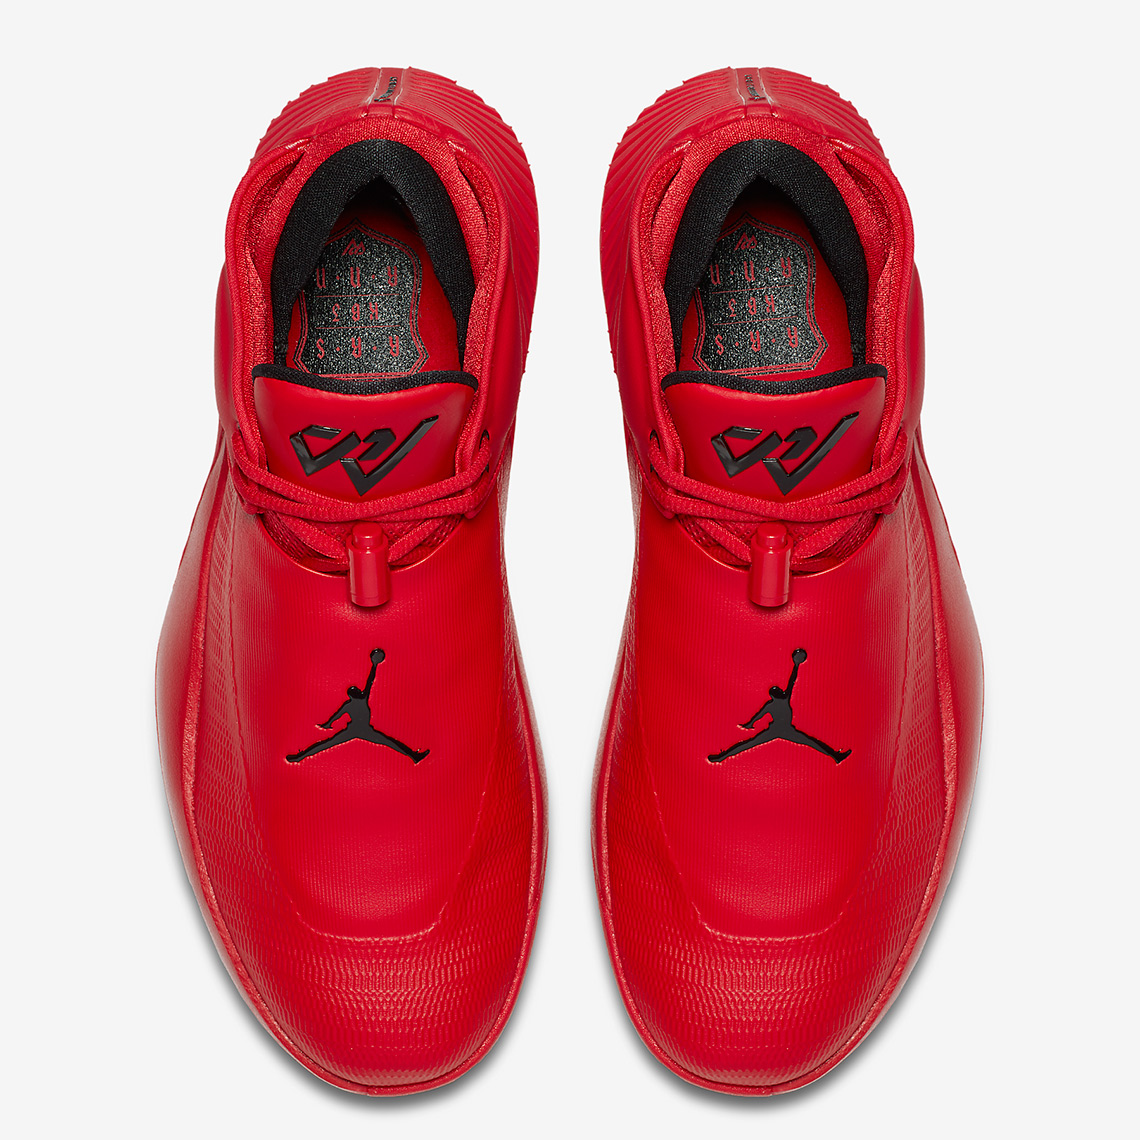 jordan why not zer0 1 ar0043 600 7 - Russell Westbrook's Jordan Signature Shoe Releases In All Red